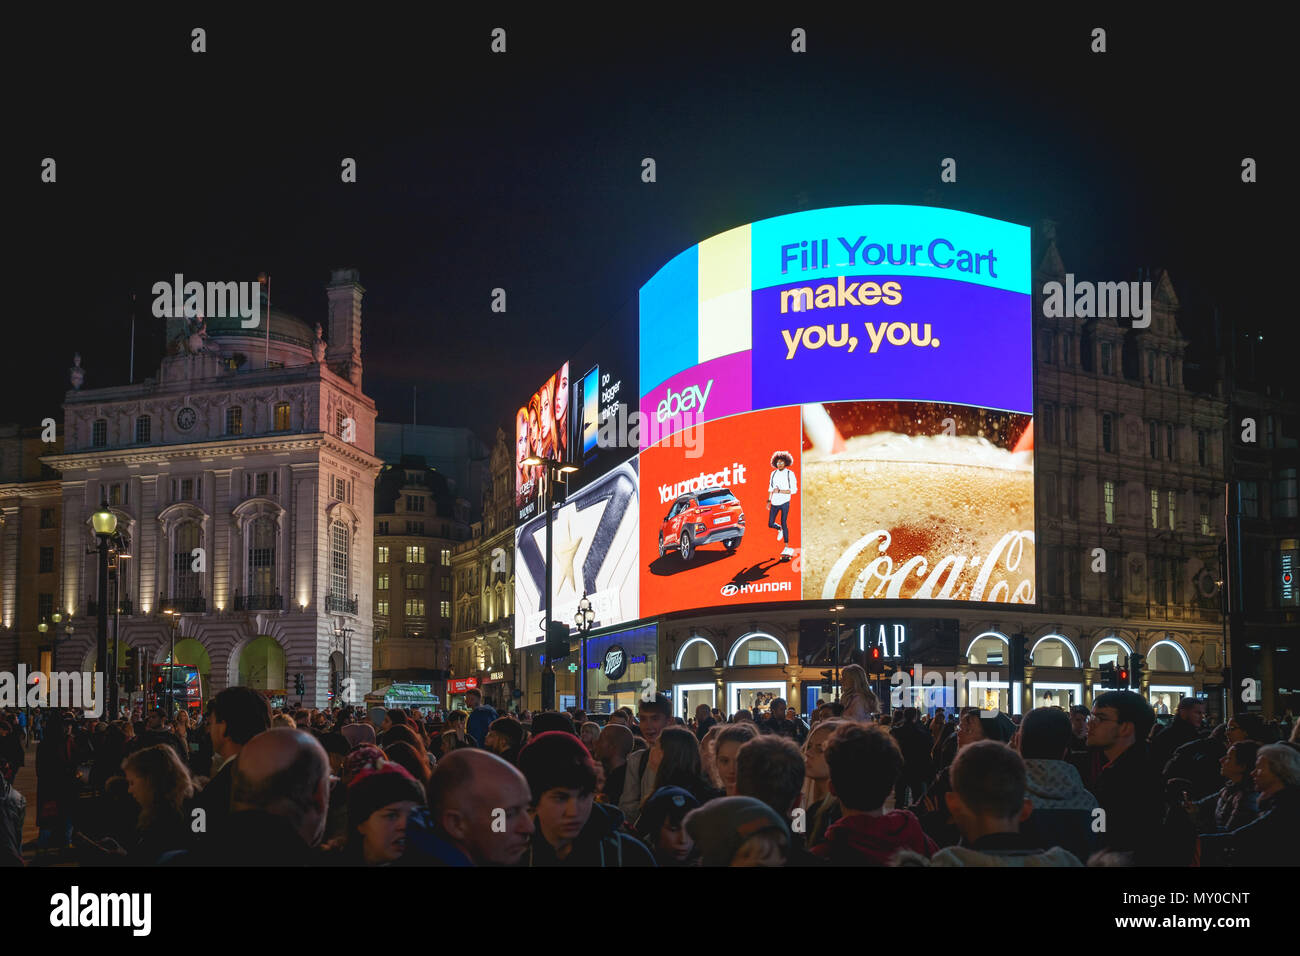 London, UK - November 2017. New iconic electronic ultra-high definition curved billboards have been switch on after an upgrade in Piccadilly Circus. Stock Photo